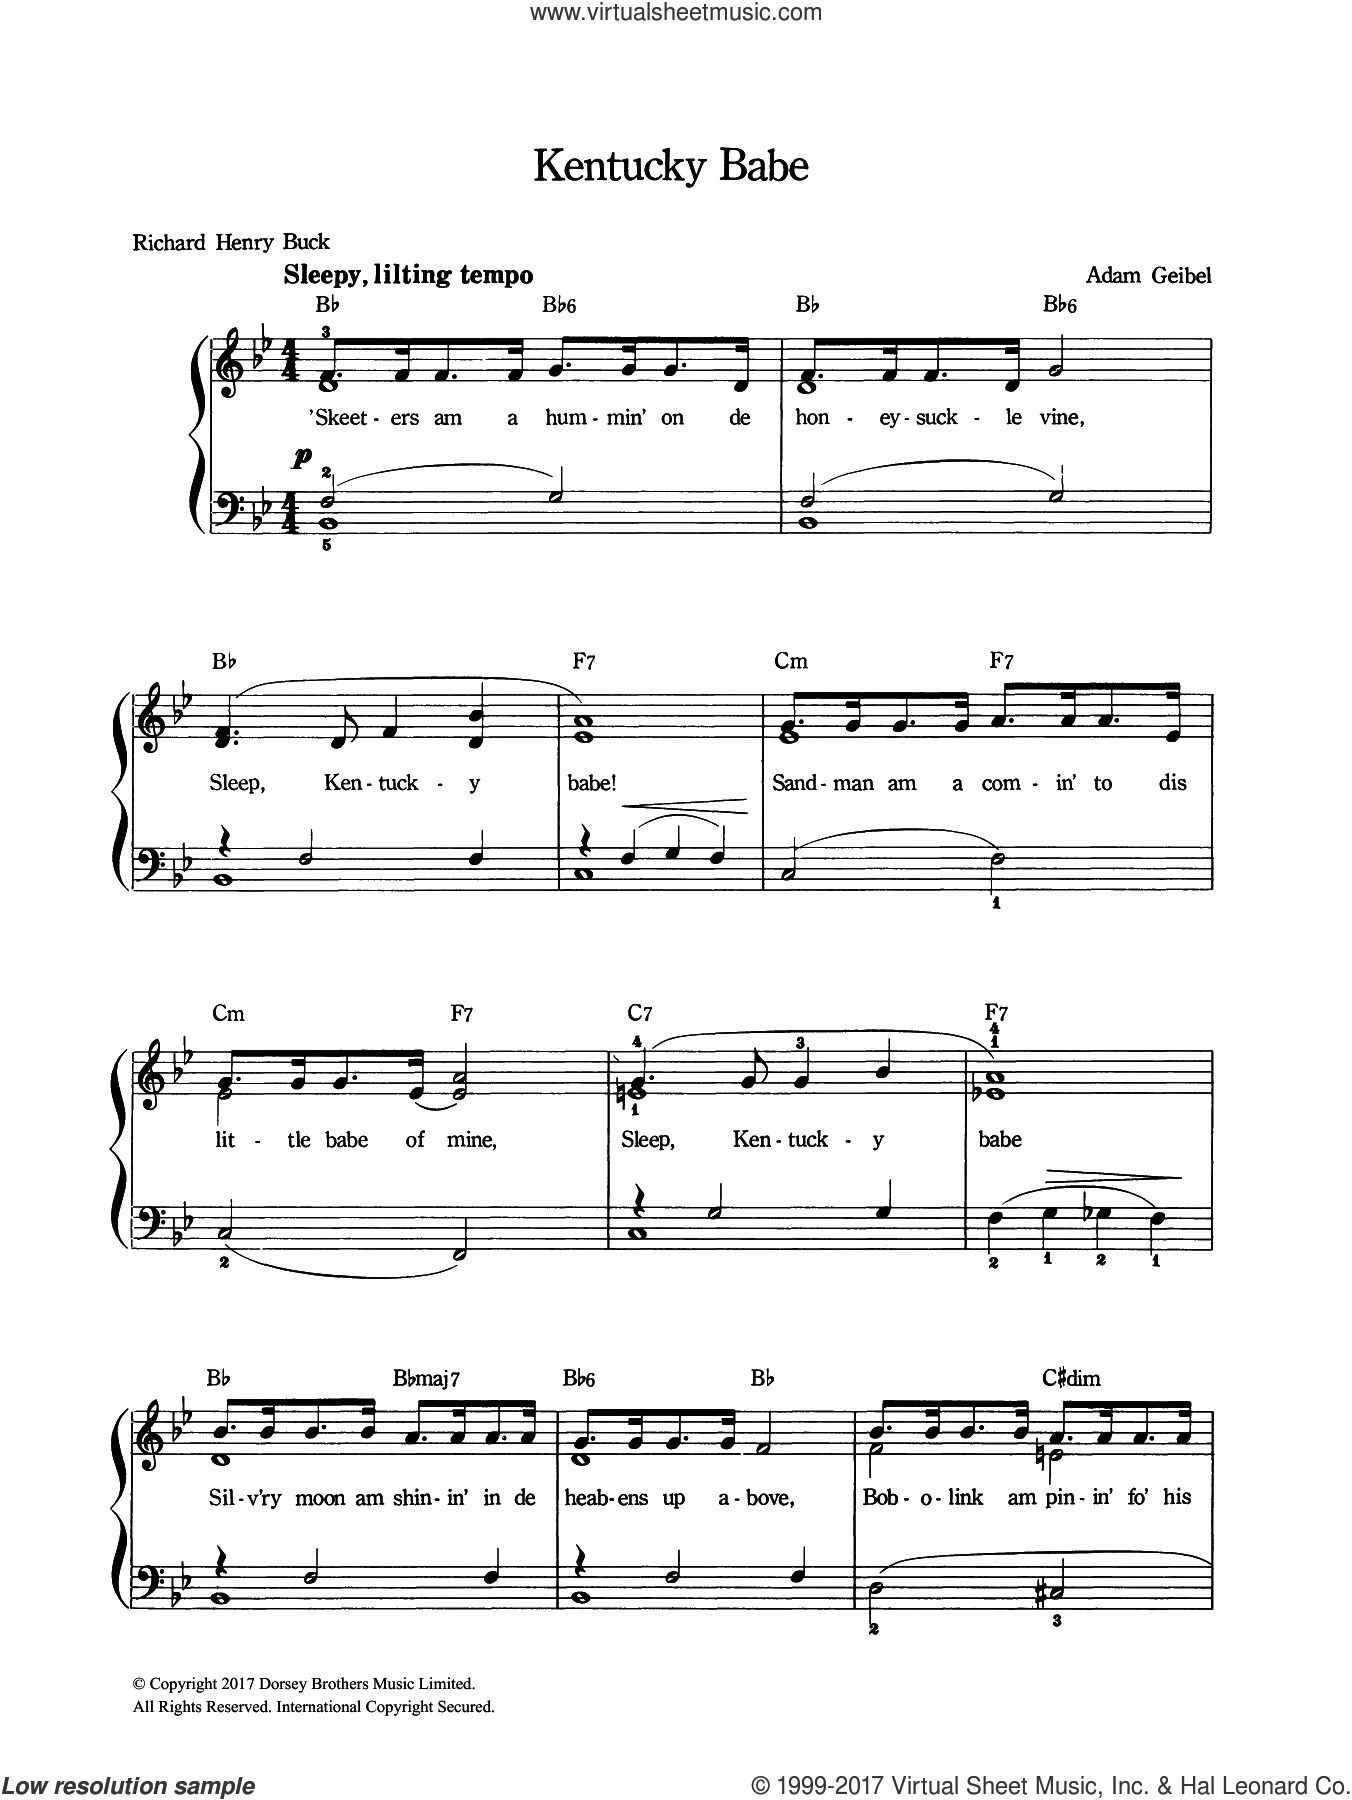 Kentucky Babe sheet music for voice and piano by Adam Geibel, intermediate skill level